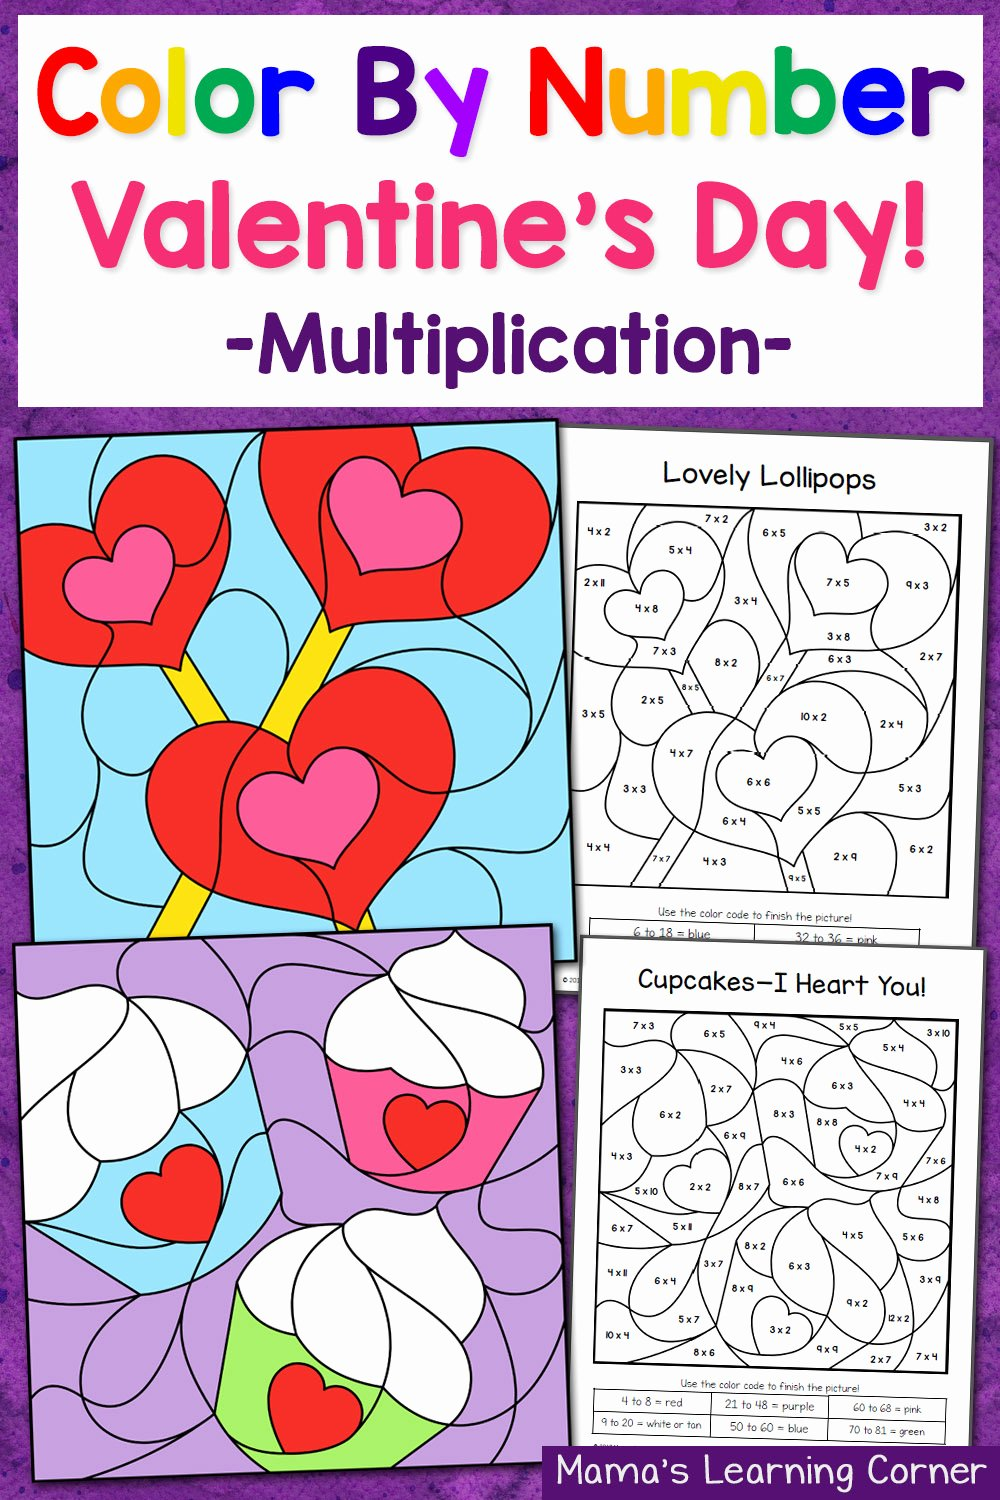 Valentines Day Multiplication Worksheets Fresh Valentine S Day Color by Number Multiplication Worksheets